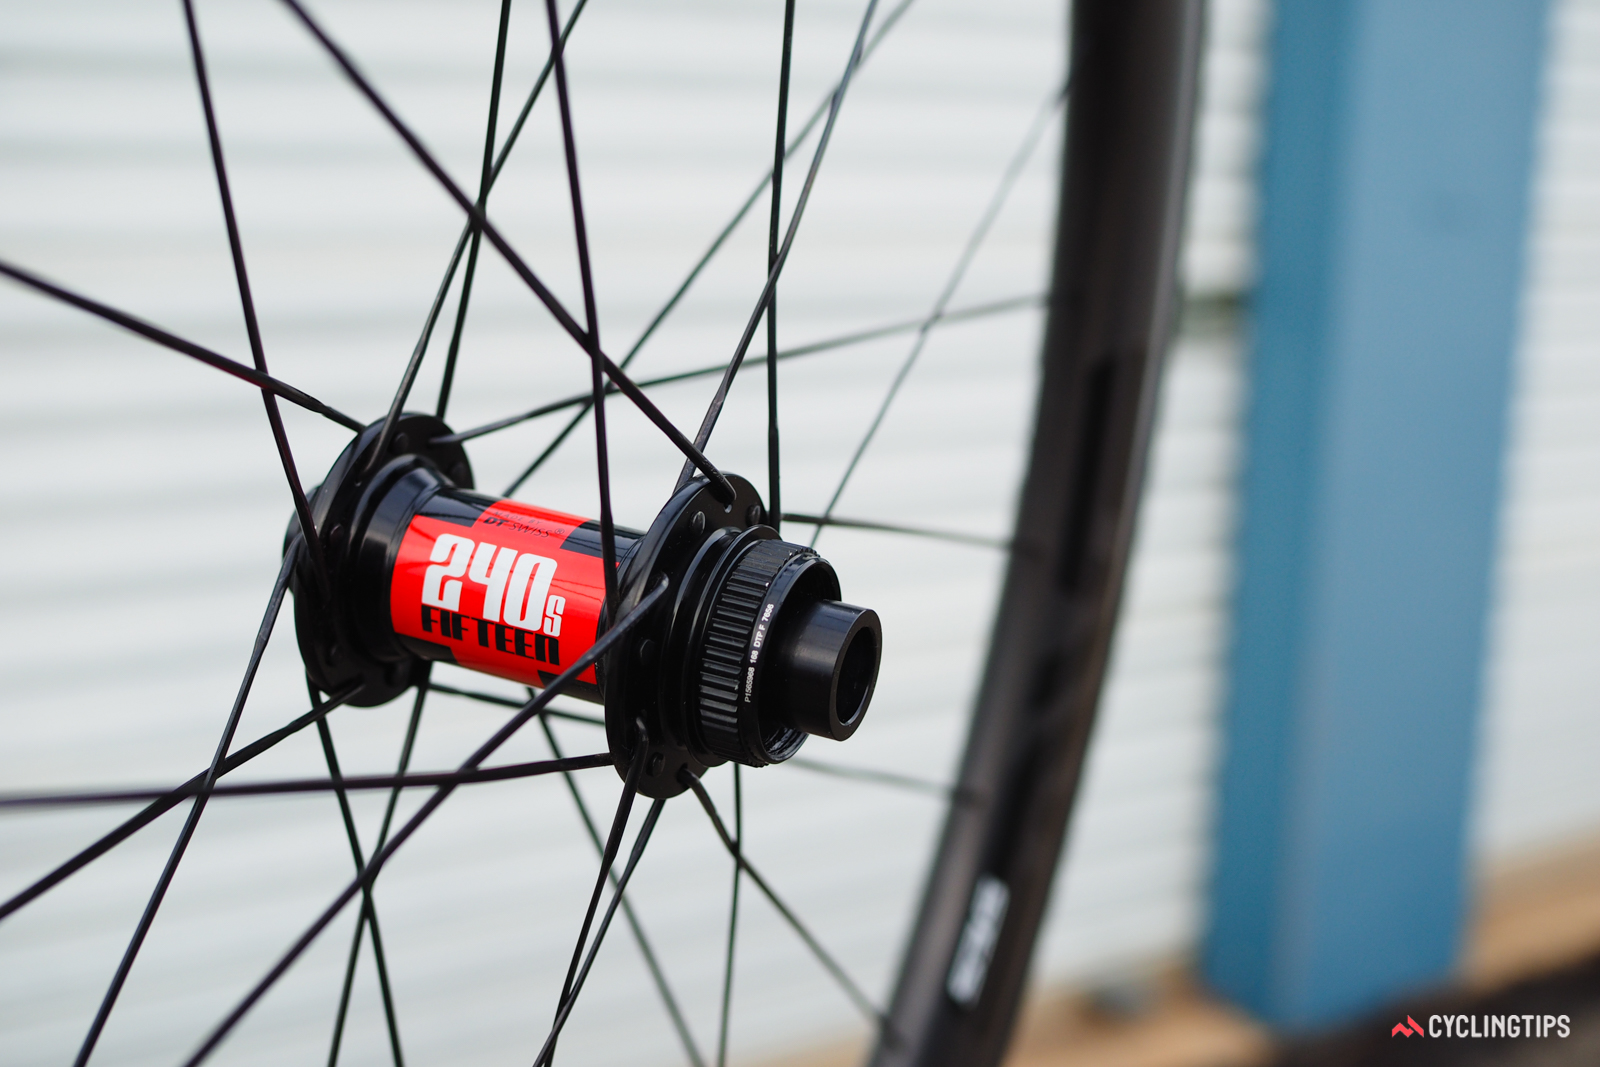 Enve offers the 4.5 AR Disc wheels with either DT Swiss 240s or Chris King R45 hubs, both with splined Center Lock rotor interfaces. Only the DT Swiss set can handle both 12mm and 15mm-diameter front thru-axles, though, plus they're 75g lighter for the set. Custom builds are also available through WheelBuilder.com.